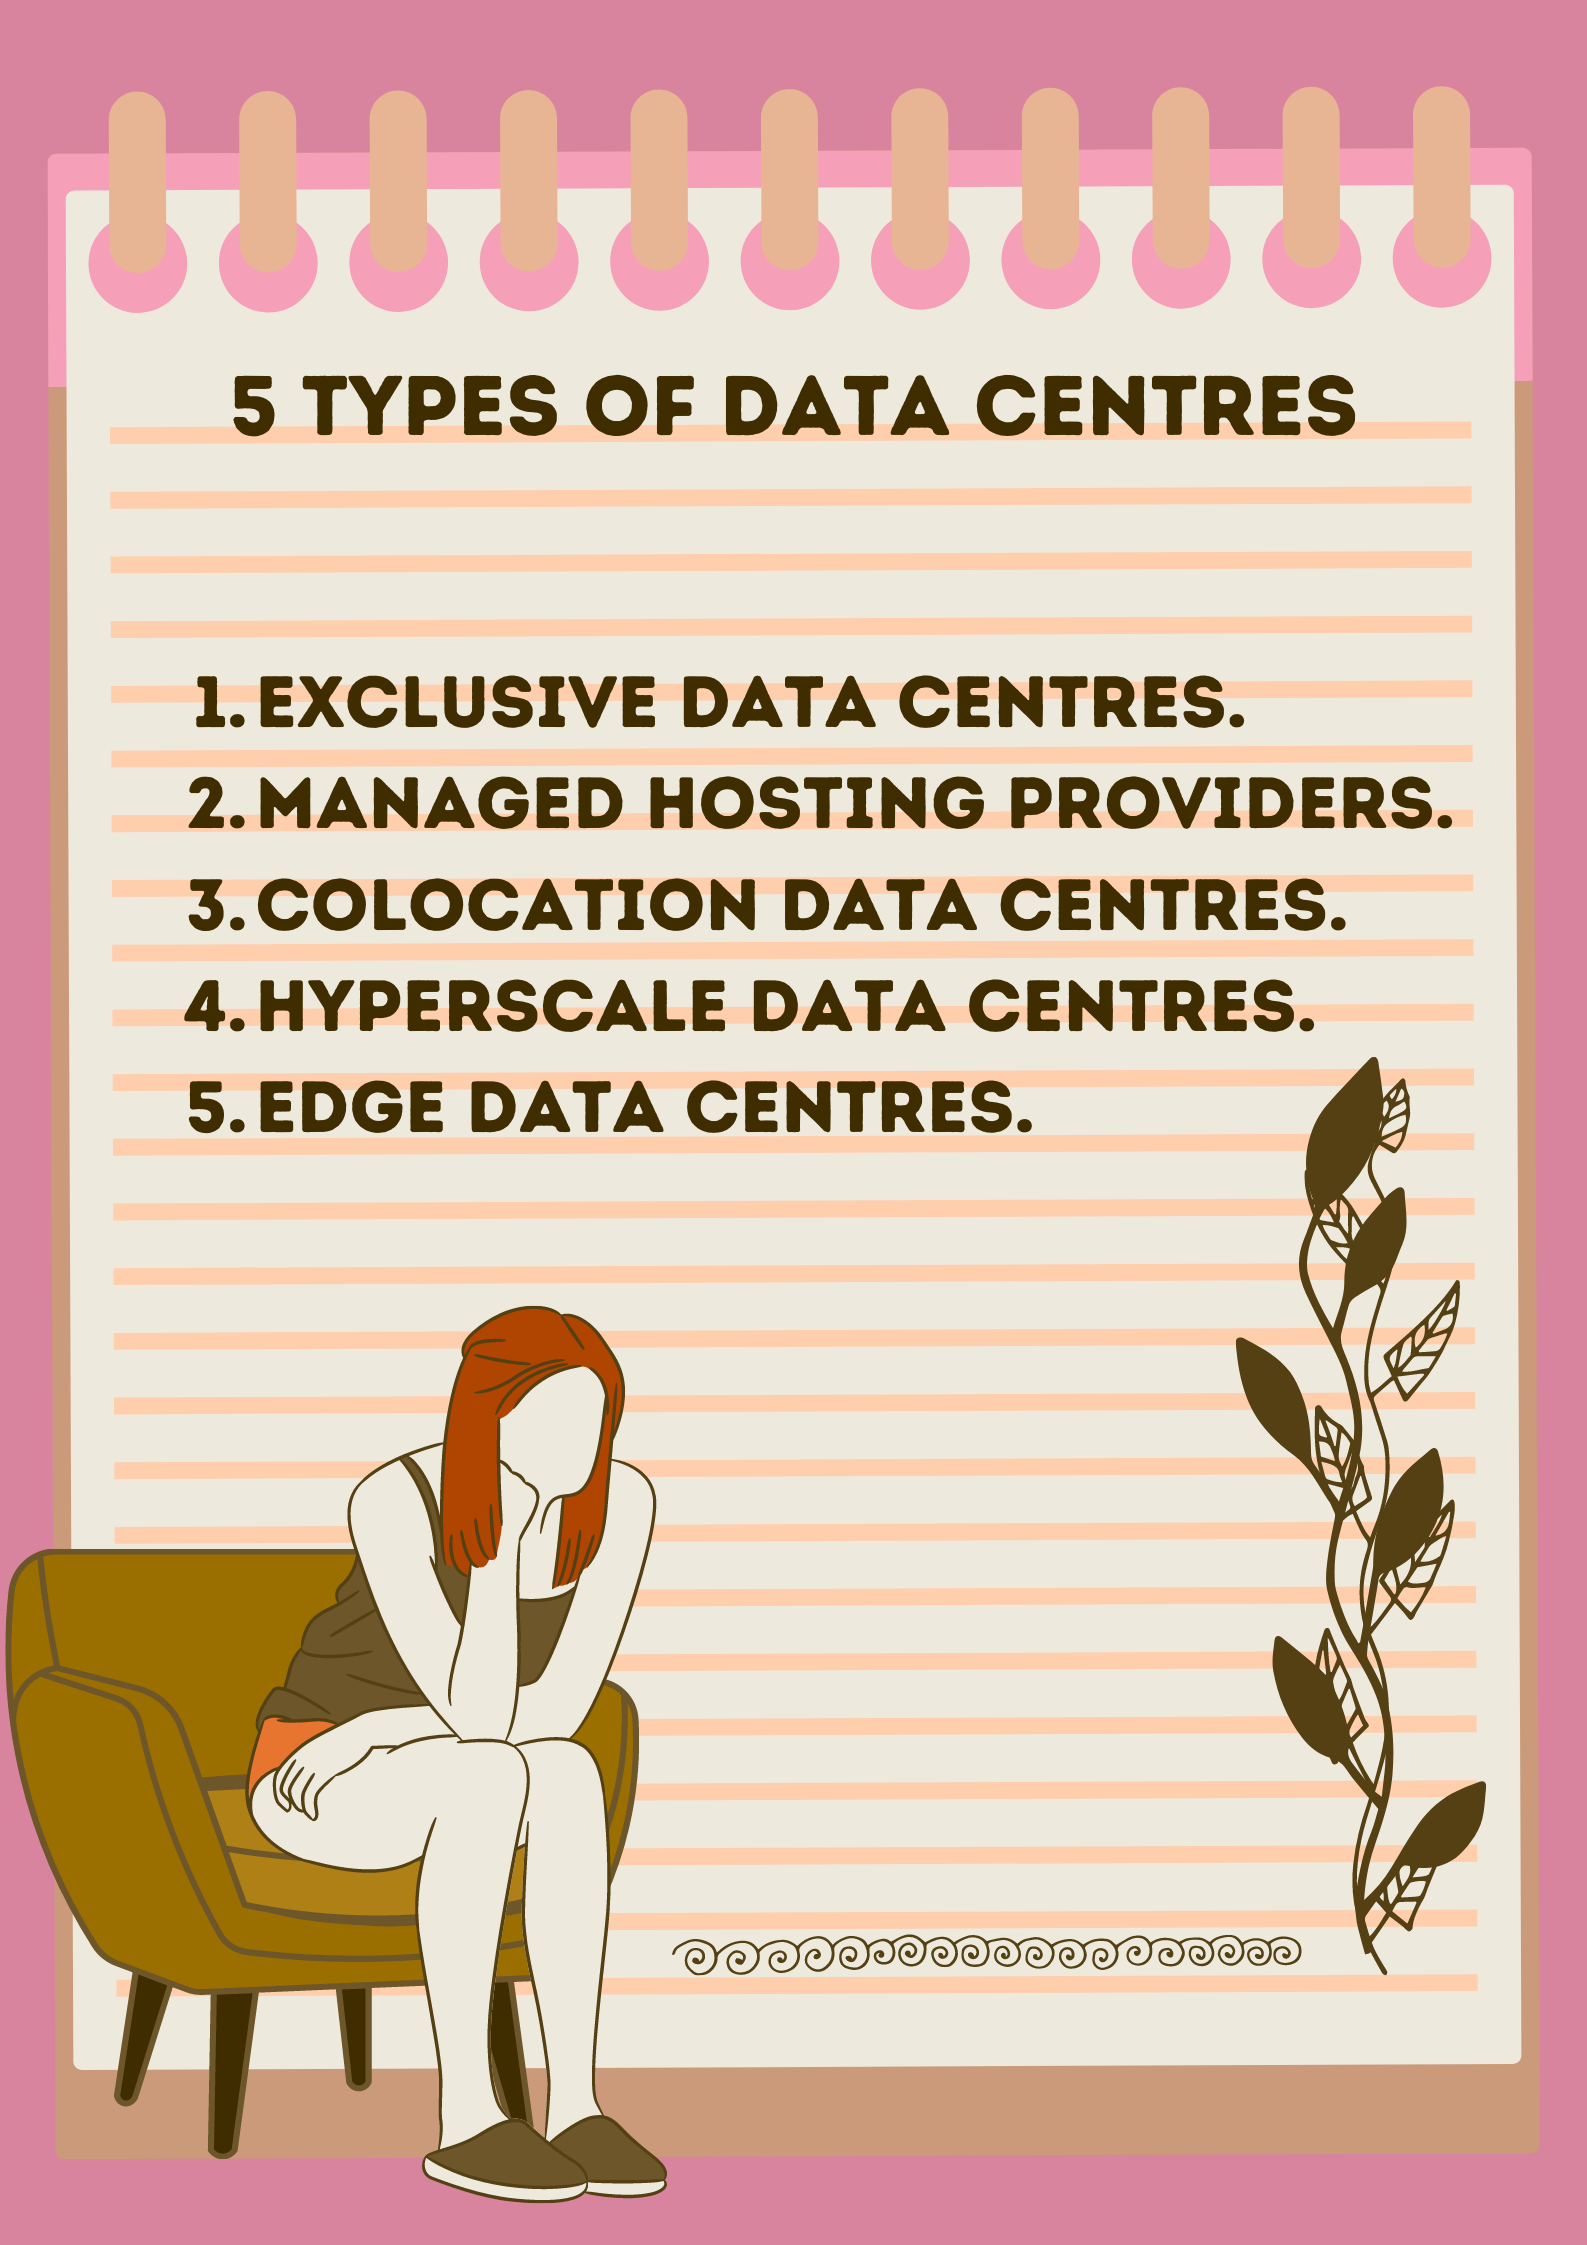 5-Types-of-Data-Centres